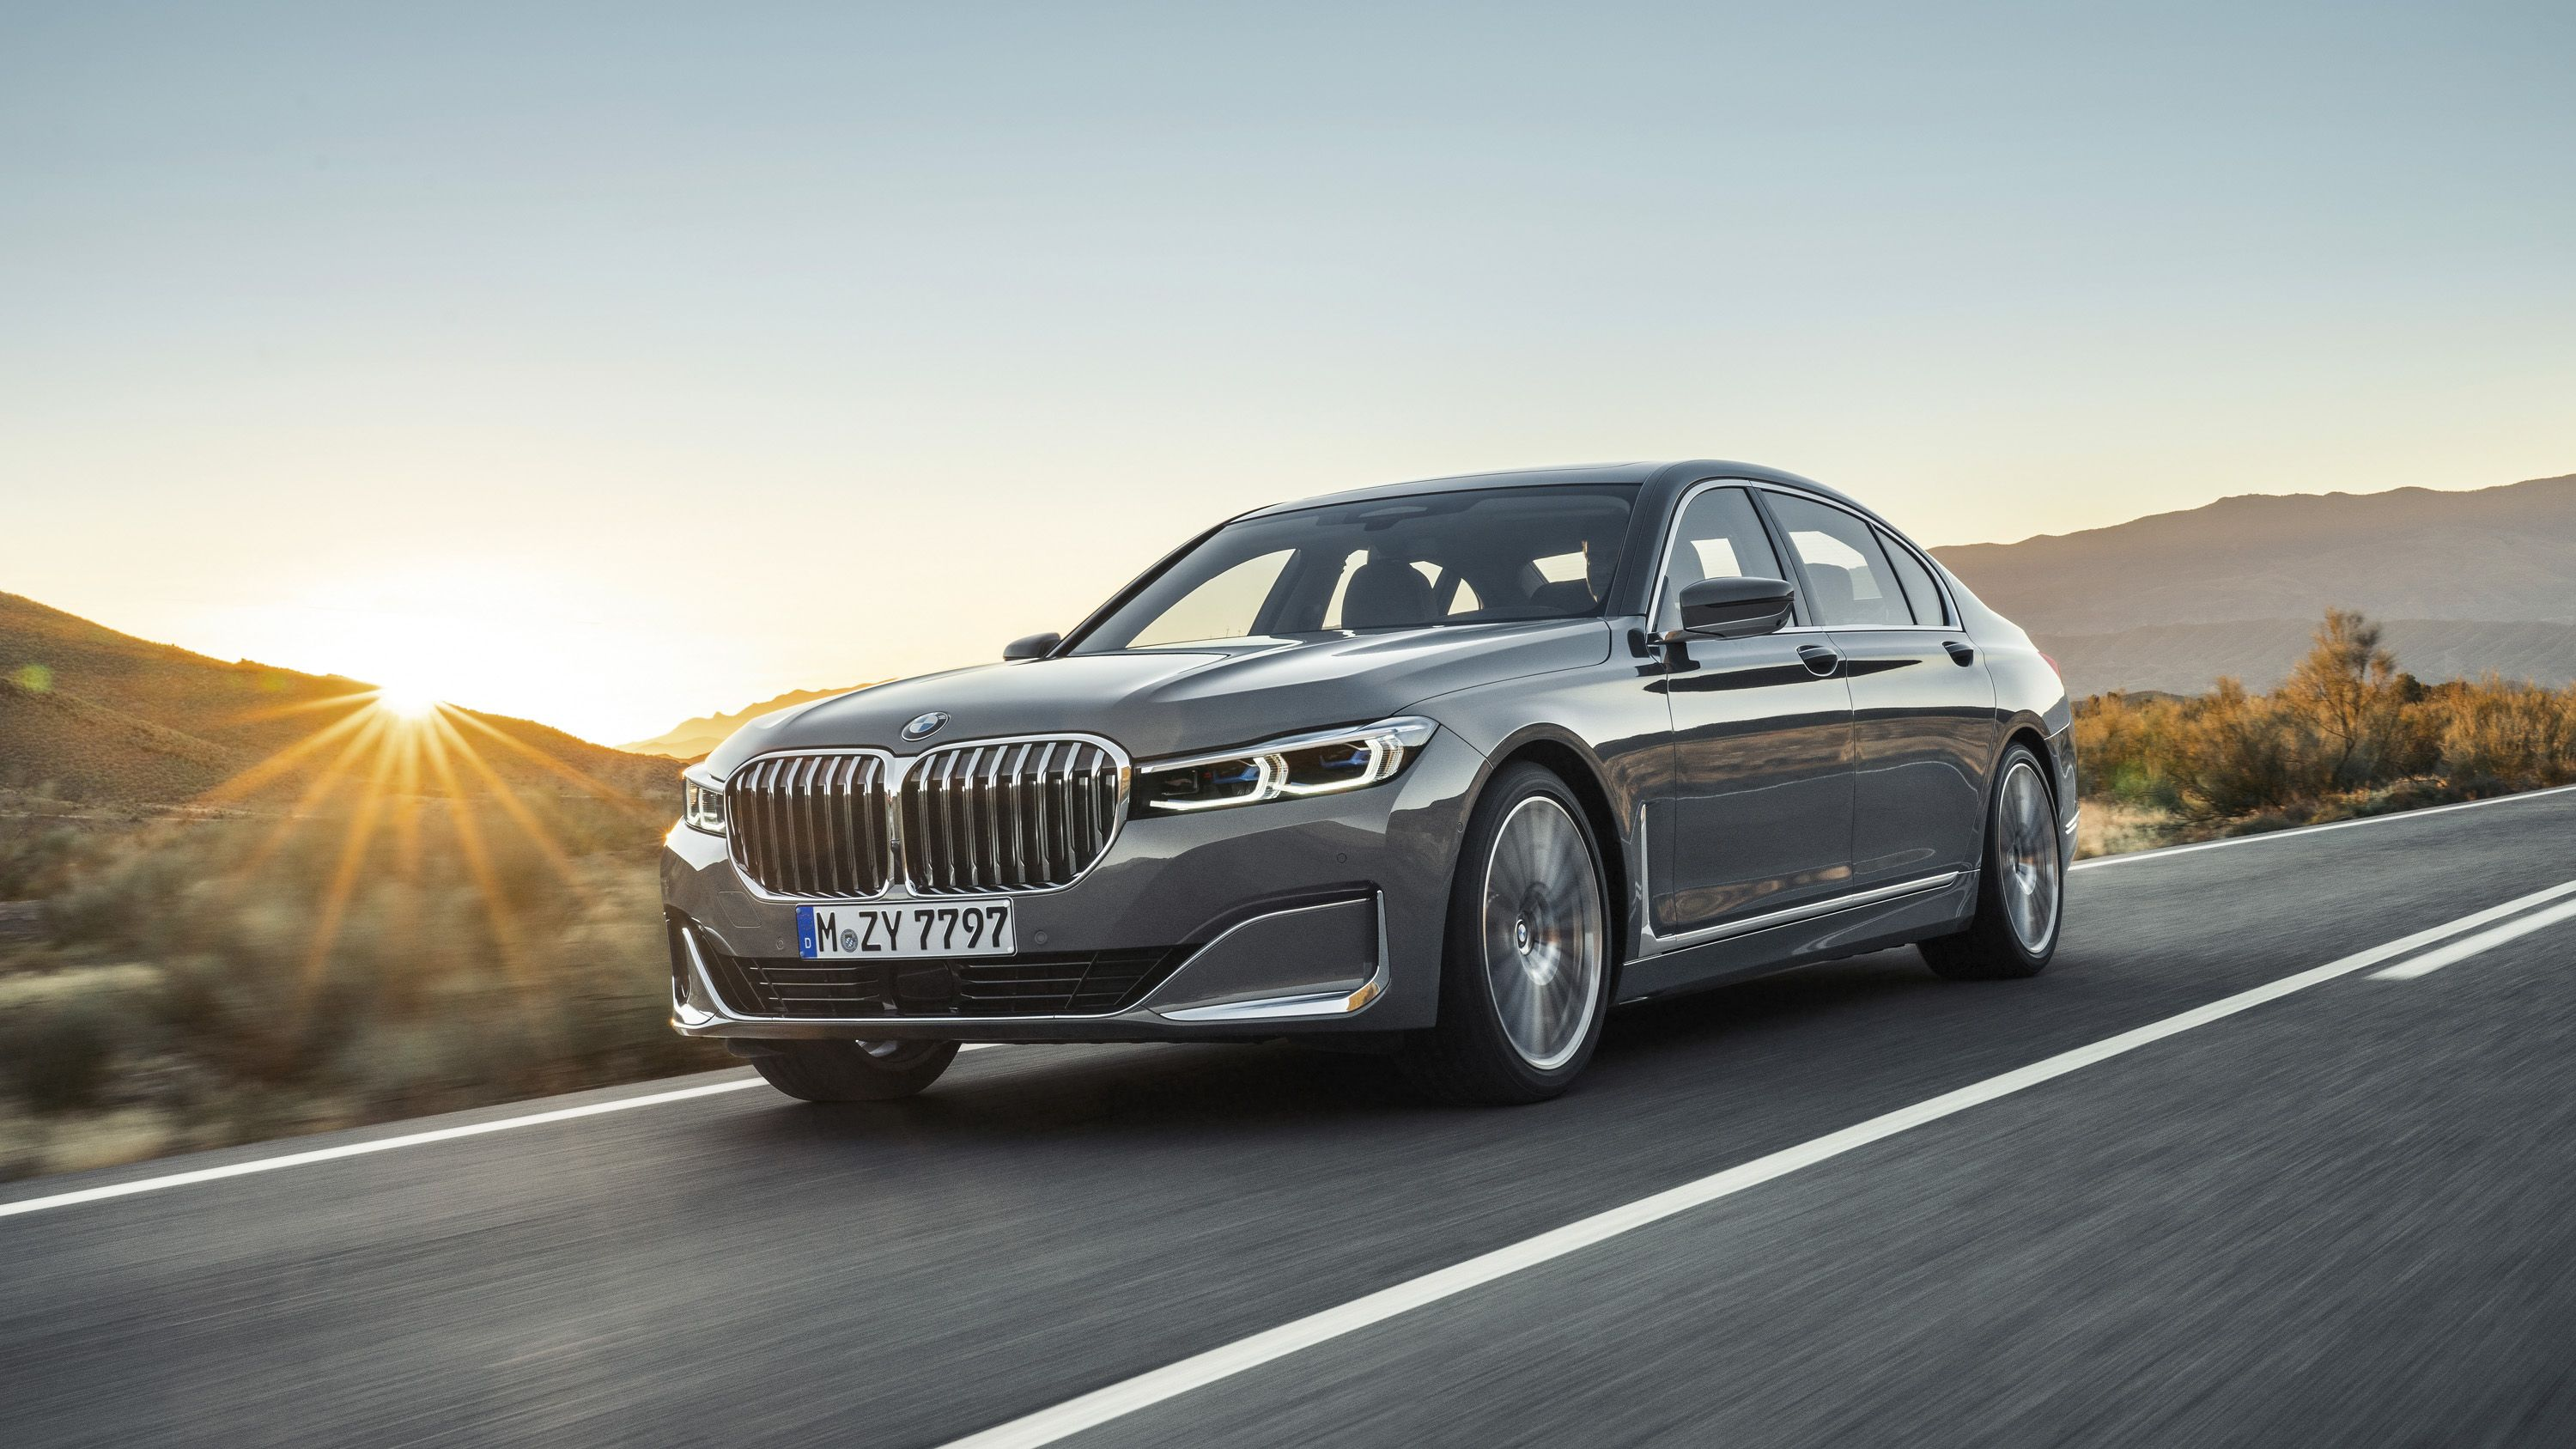 There S More To The 2020 Bmw 7 Series Than That Massive Grille